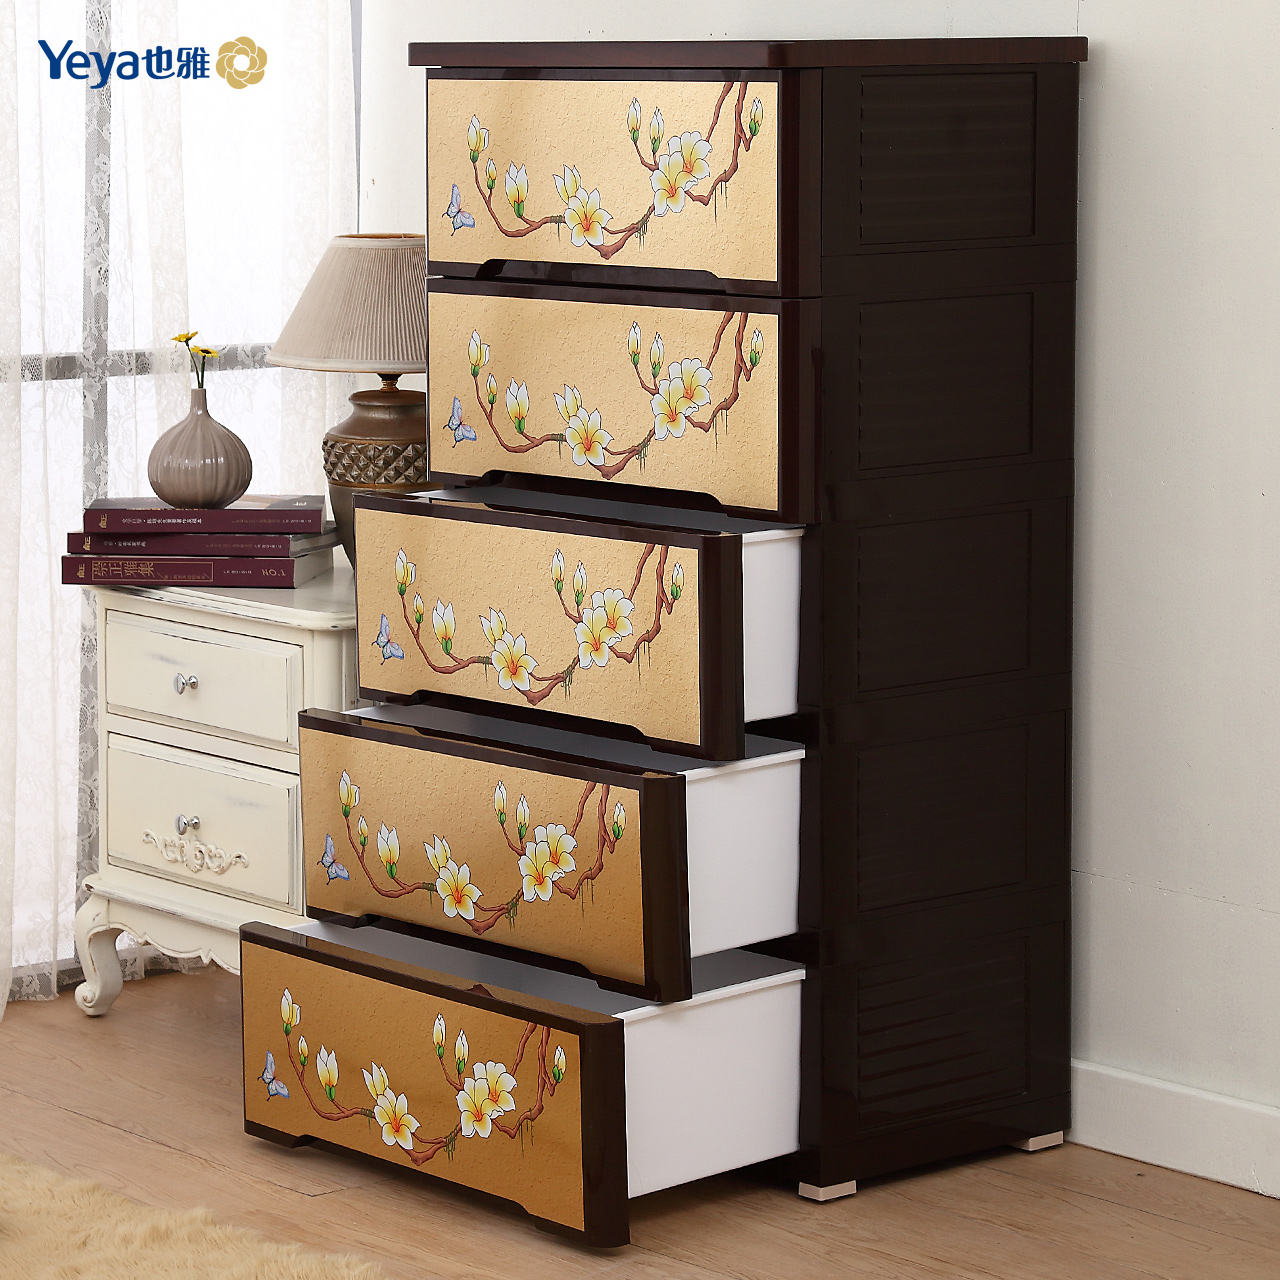 Accor also yeya blossoming in the famous wooden roof plastic pumping drawer storage cabinets lockers chest of drawers chest of drawers Box